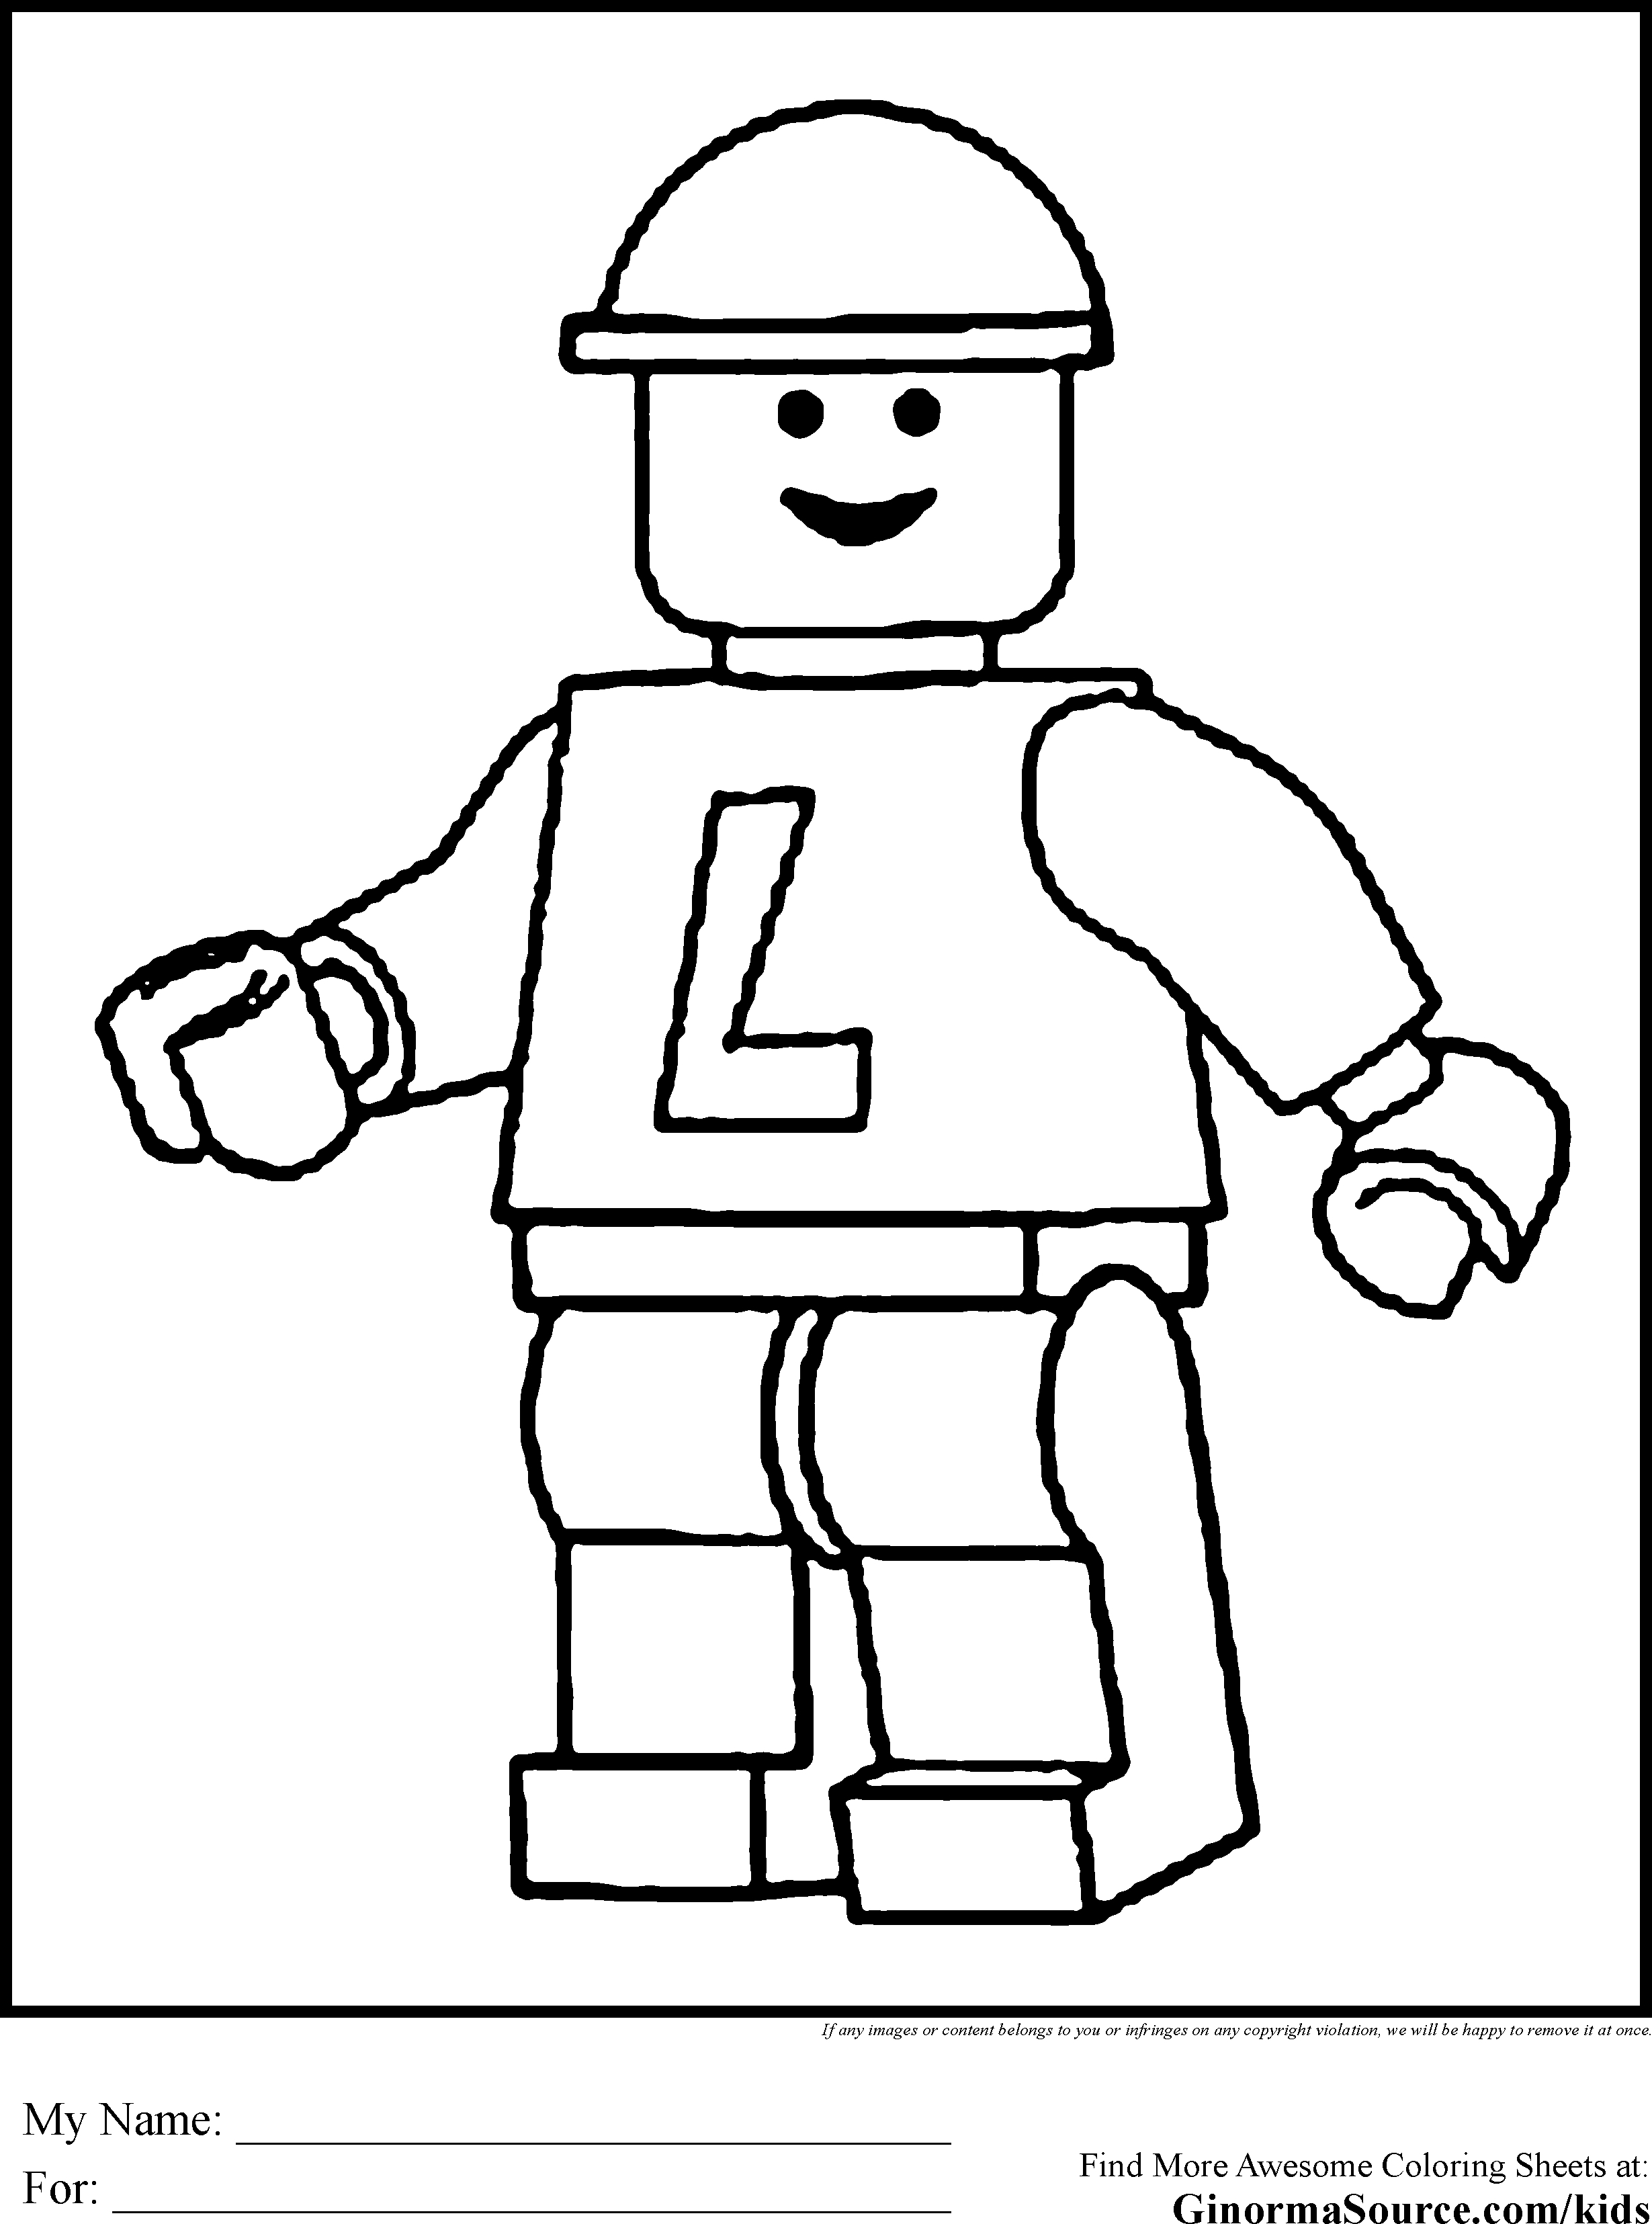 lego block banner printable coloring pages | Bricks Drawing at GetDrawings.com | Free for personal use ...